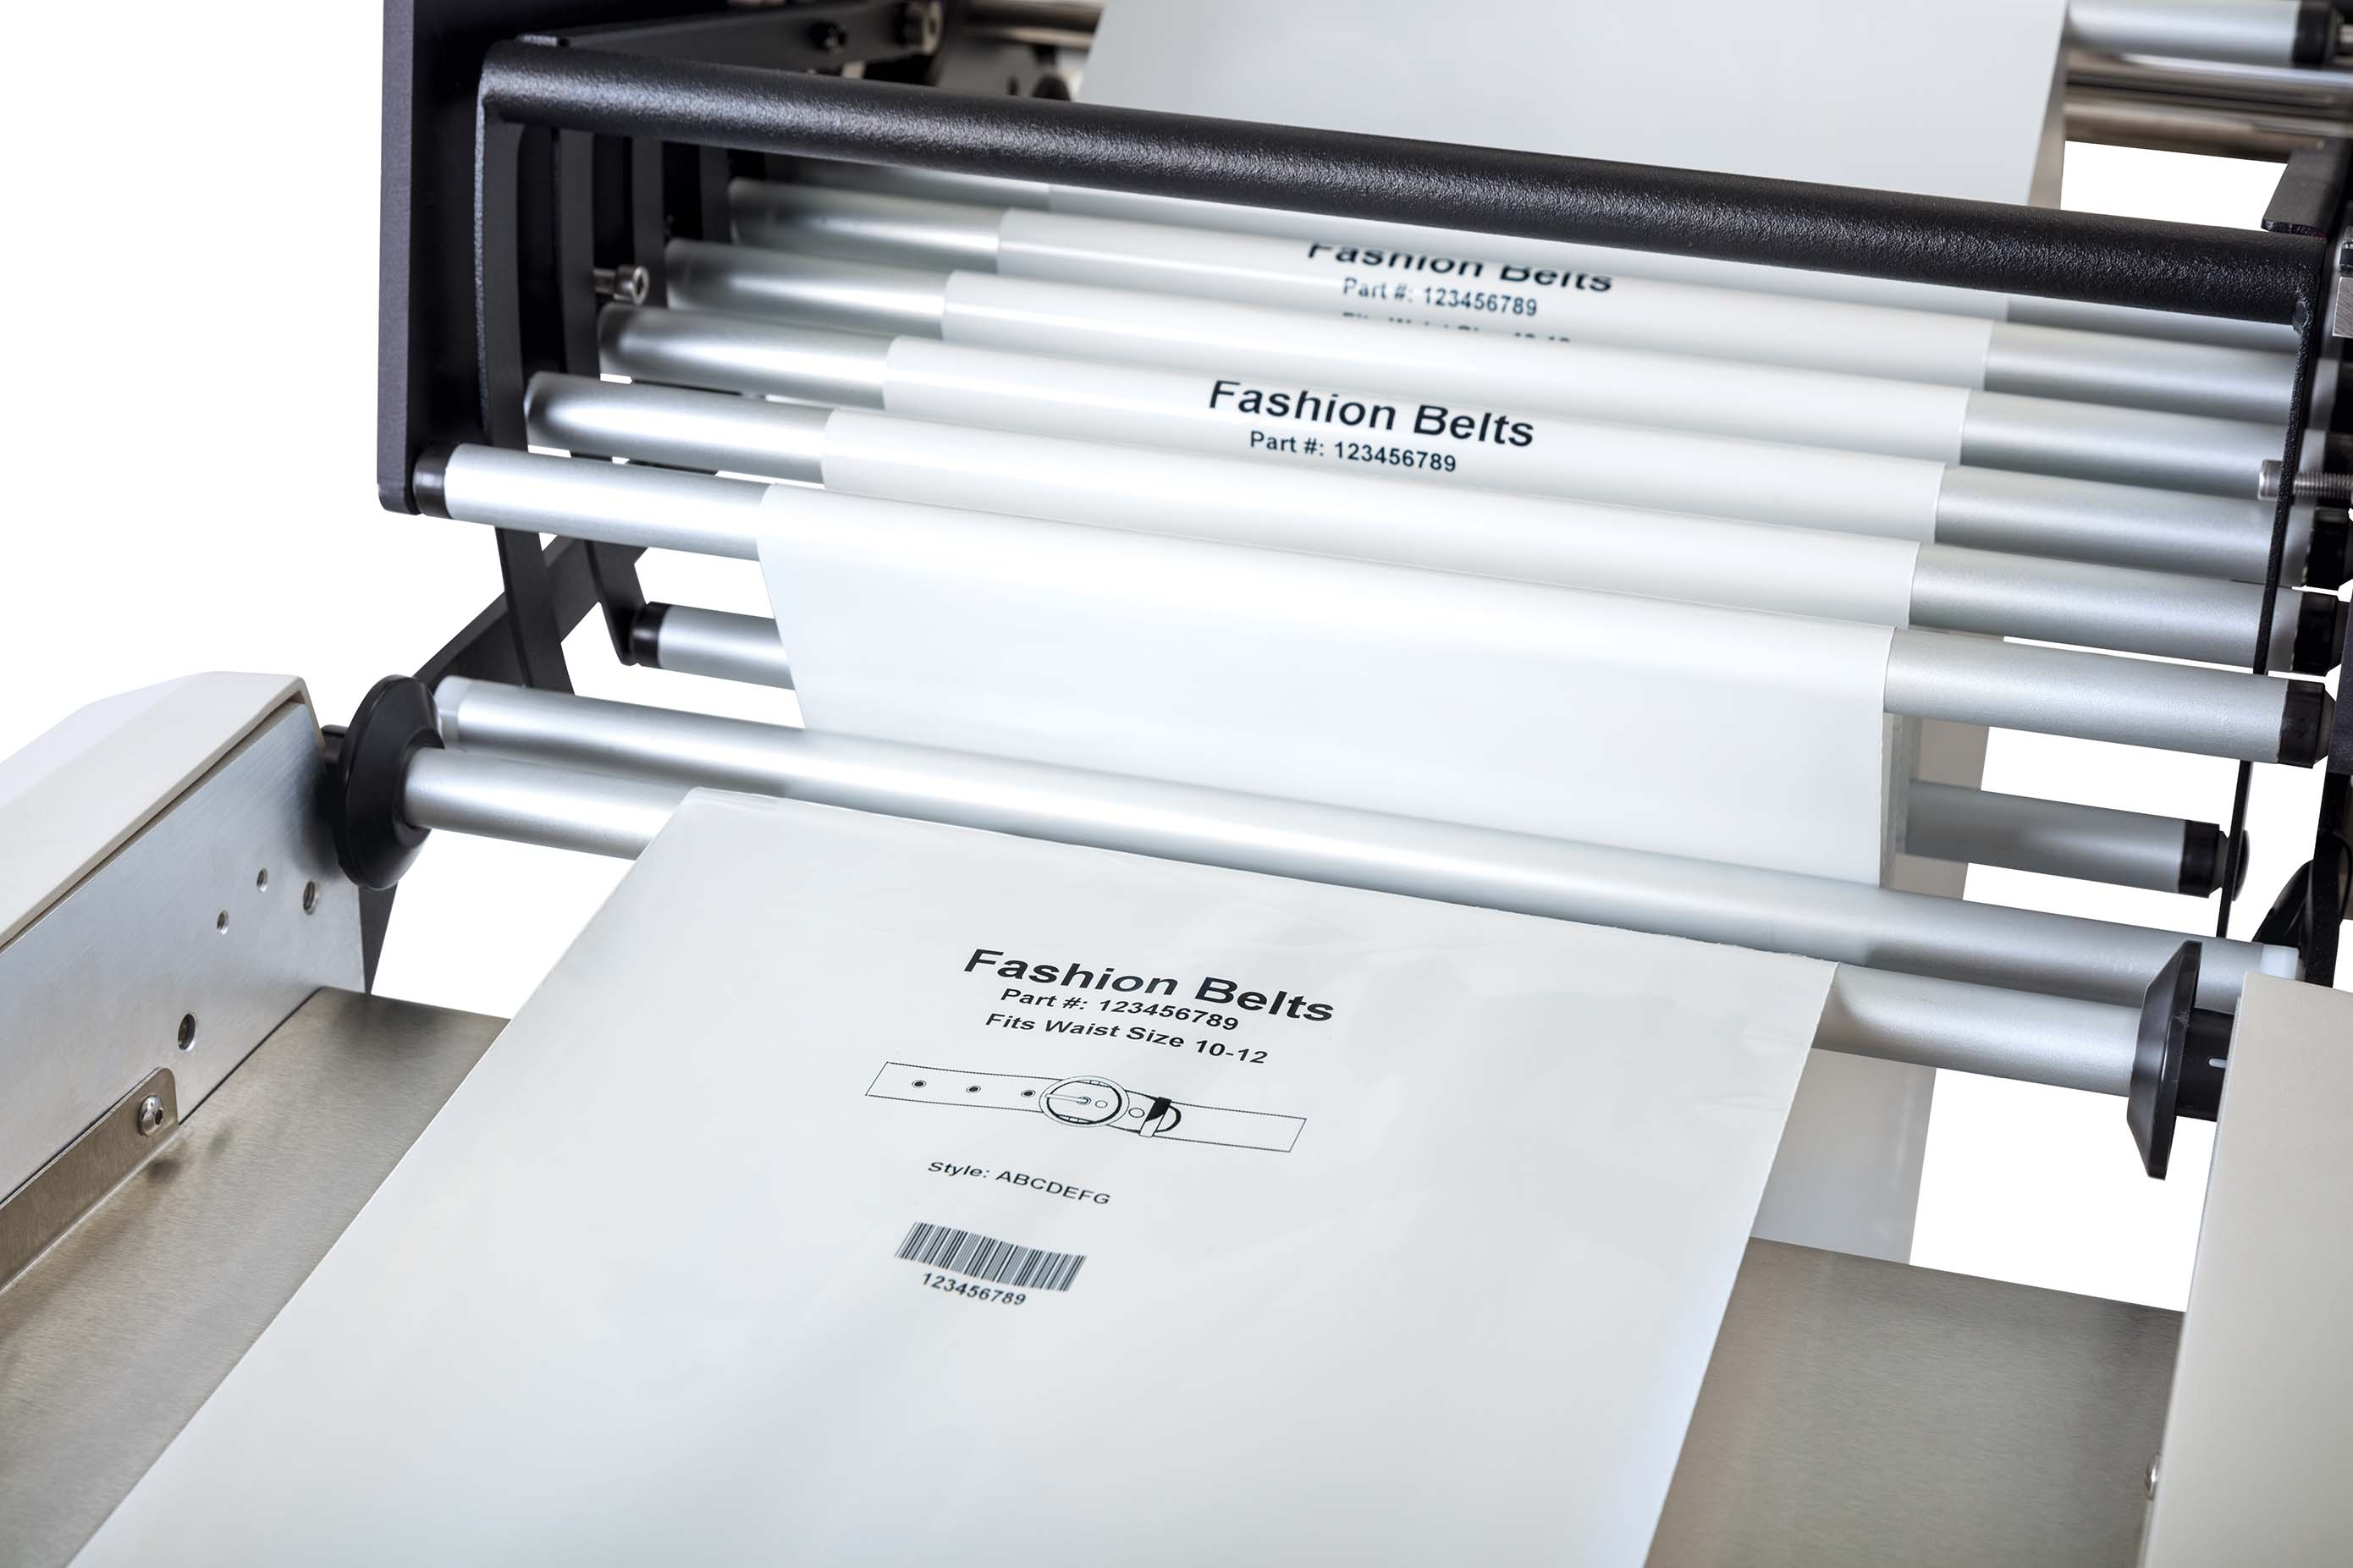 AutoLabel 600 high resolution inline printer showing graphics, text, barcodes